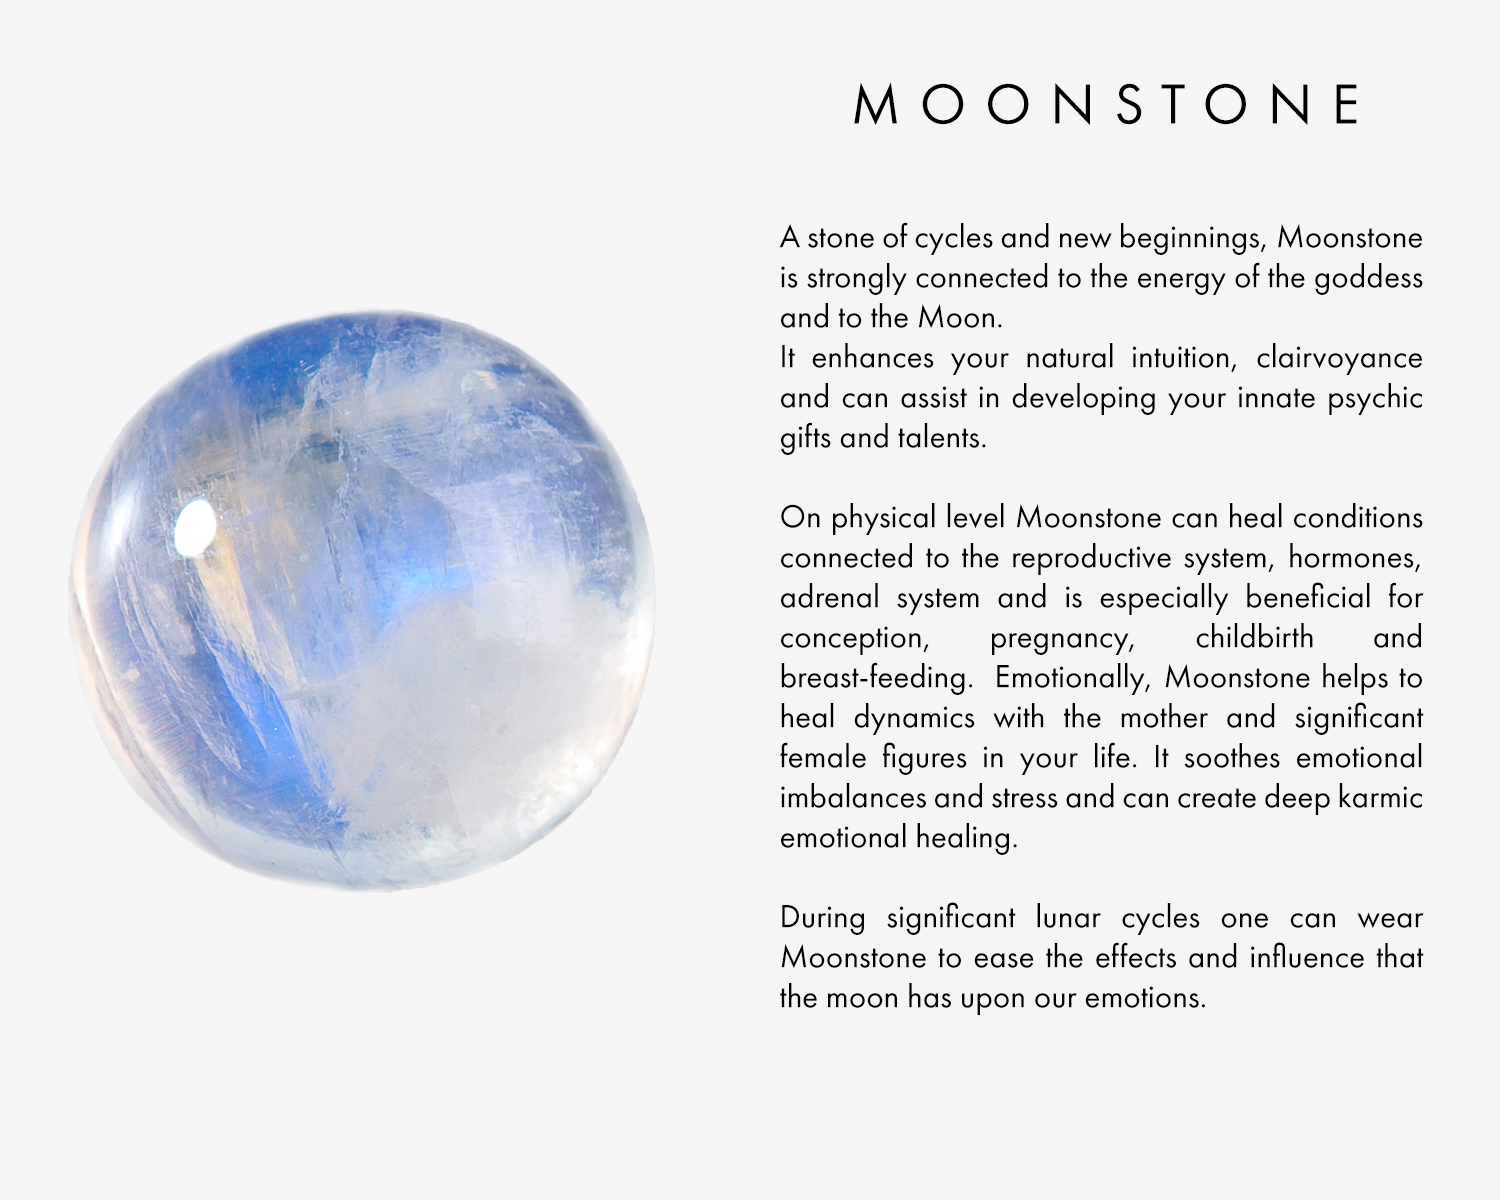 A stone of cycles and new beginnings, Moonstone is strongly connected to the energy of the goddess and to the Moon. It enhances your natural intuition, clairvoyance and can assist in developing your innate psychic gifts and talents.  On physical level Moonstone can heal conditions connected to the reproductive system, hormones, adrenal system and is especially beneficial for conception, pregnancy, childbirth and breast-feeding. Emotionally, Moonstone helps to heal dynamics with the mother and significant female figures in your life. It soothes emotional imbalances and stress and can create deep karmic emotional healing. During significant lunar cycles one can wear Moonstone to ease the effects and influence that the moon has upon our emotions.